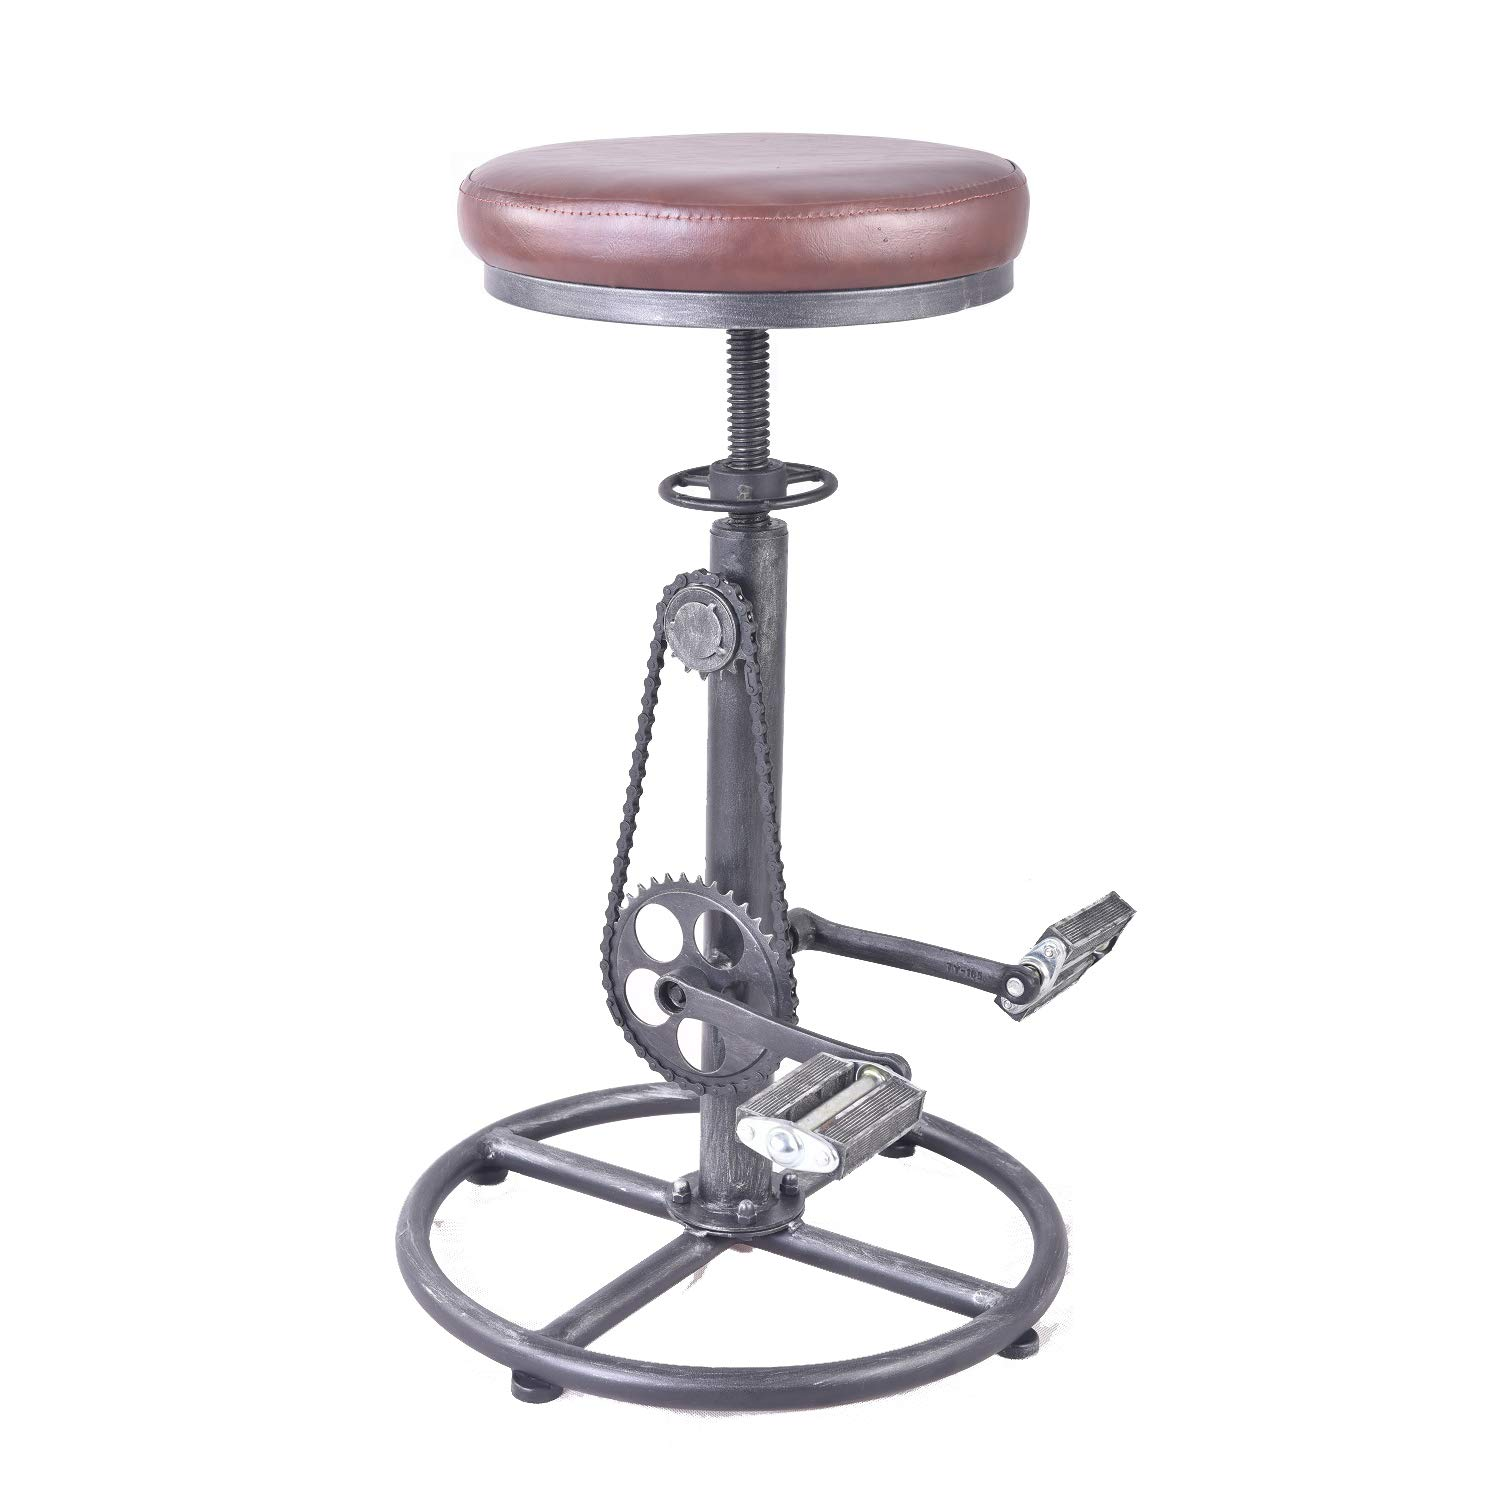 Topower Vintage DIY Bar Stool PU Soft seat & Iron Pedal Retro Industrial Height Adjustable Bicycle Wheel Design bar Chair by Topower